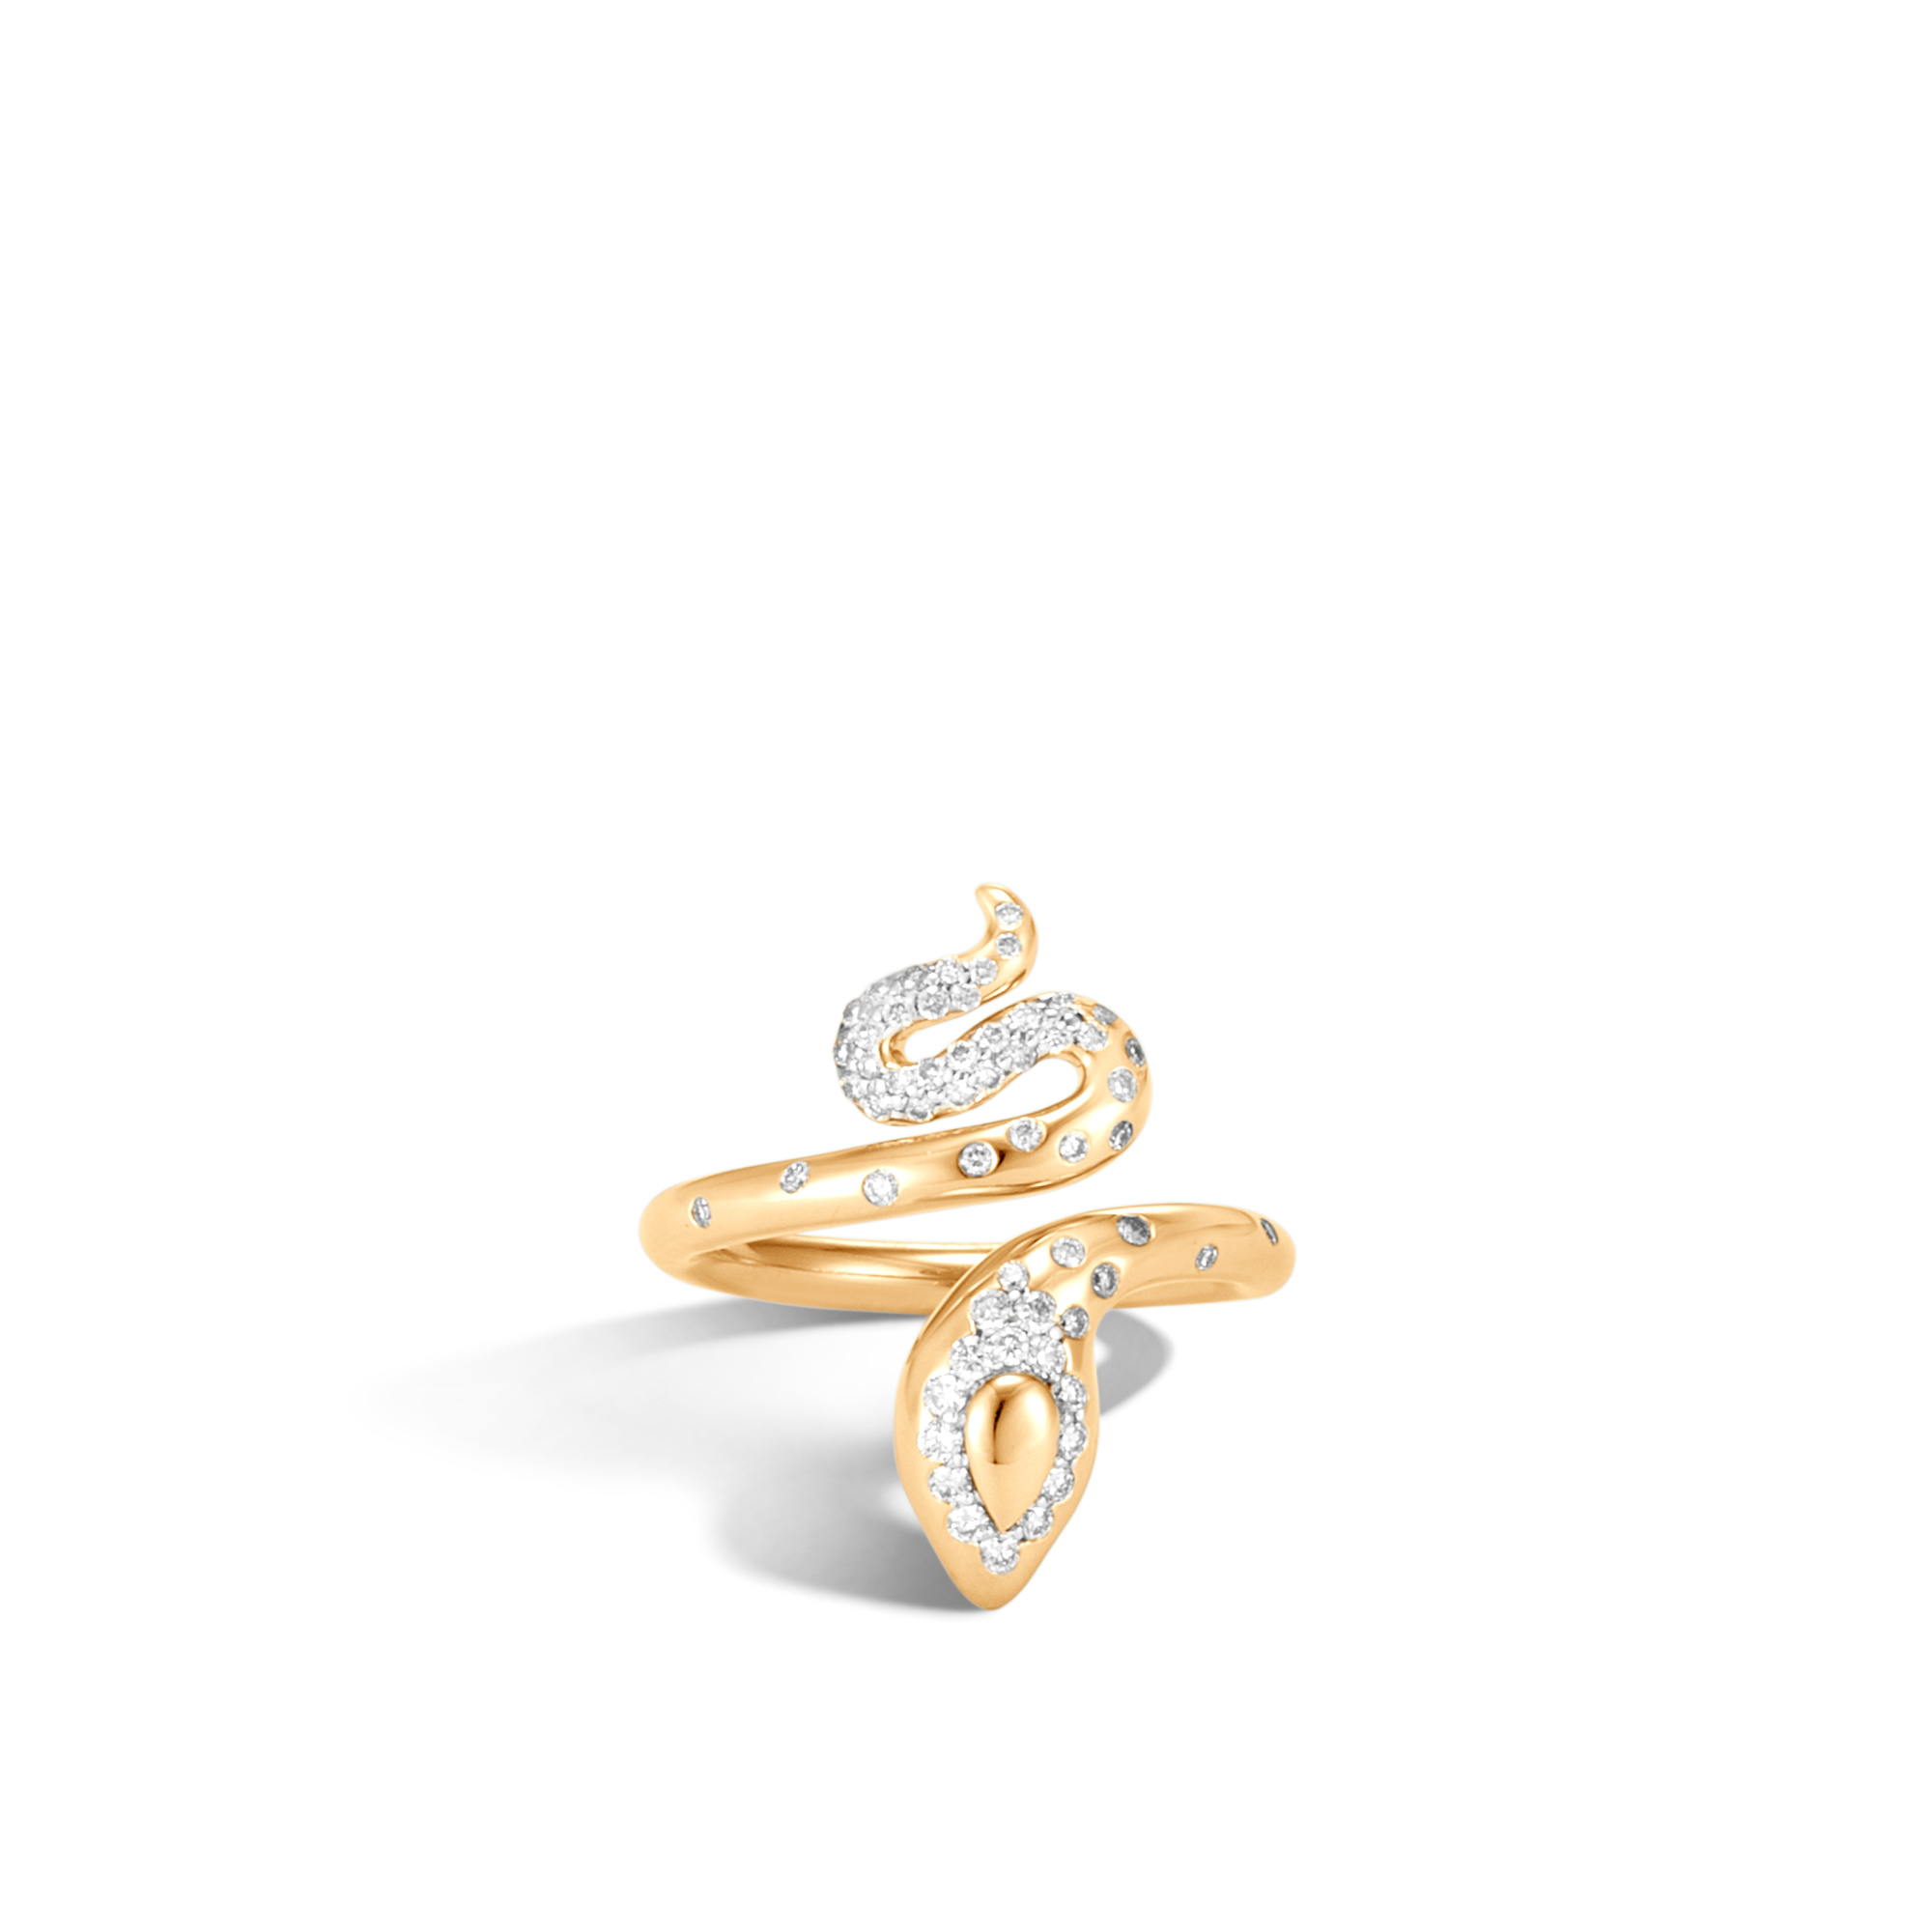 Legends Cobra Ring in 18K Gold with Diamonds, White Diamond, large